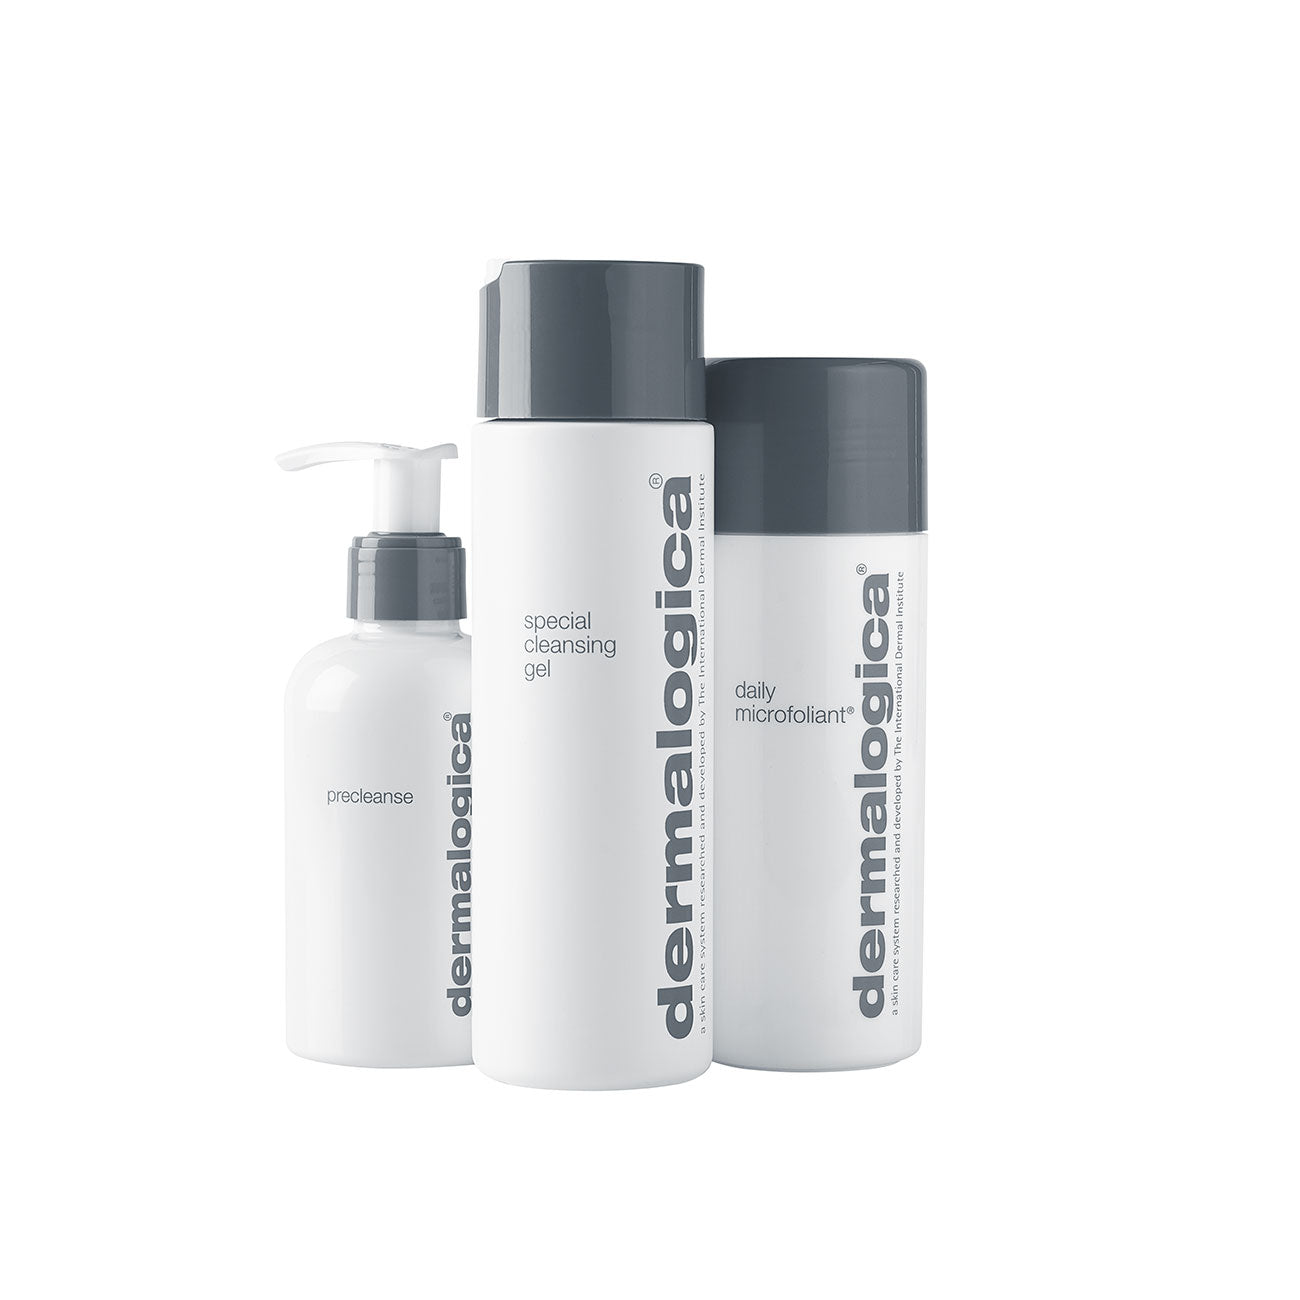 Precleanse -Special Cleansing Gel - Daily Microfoliant